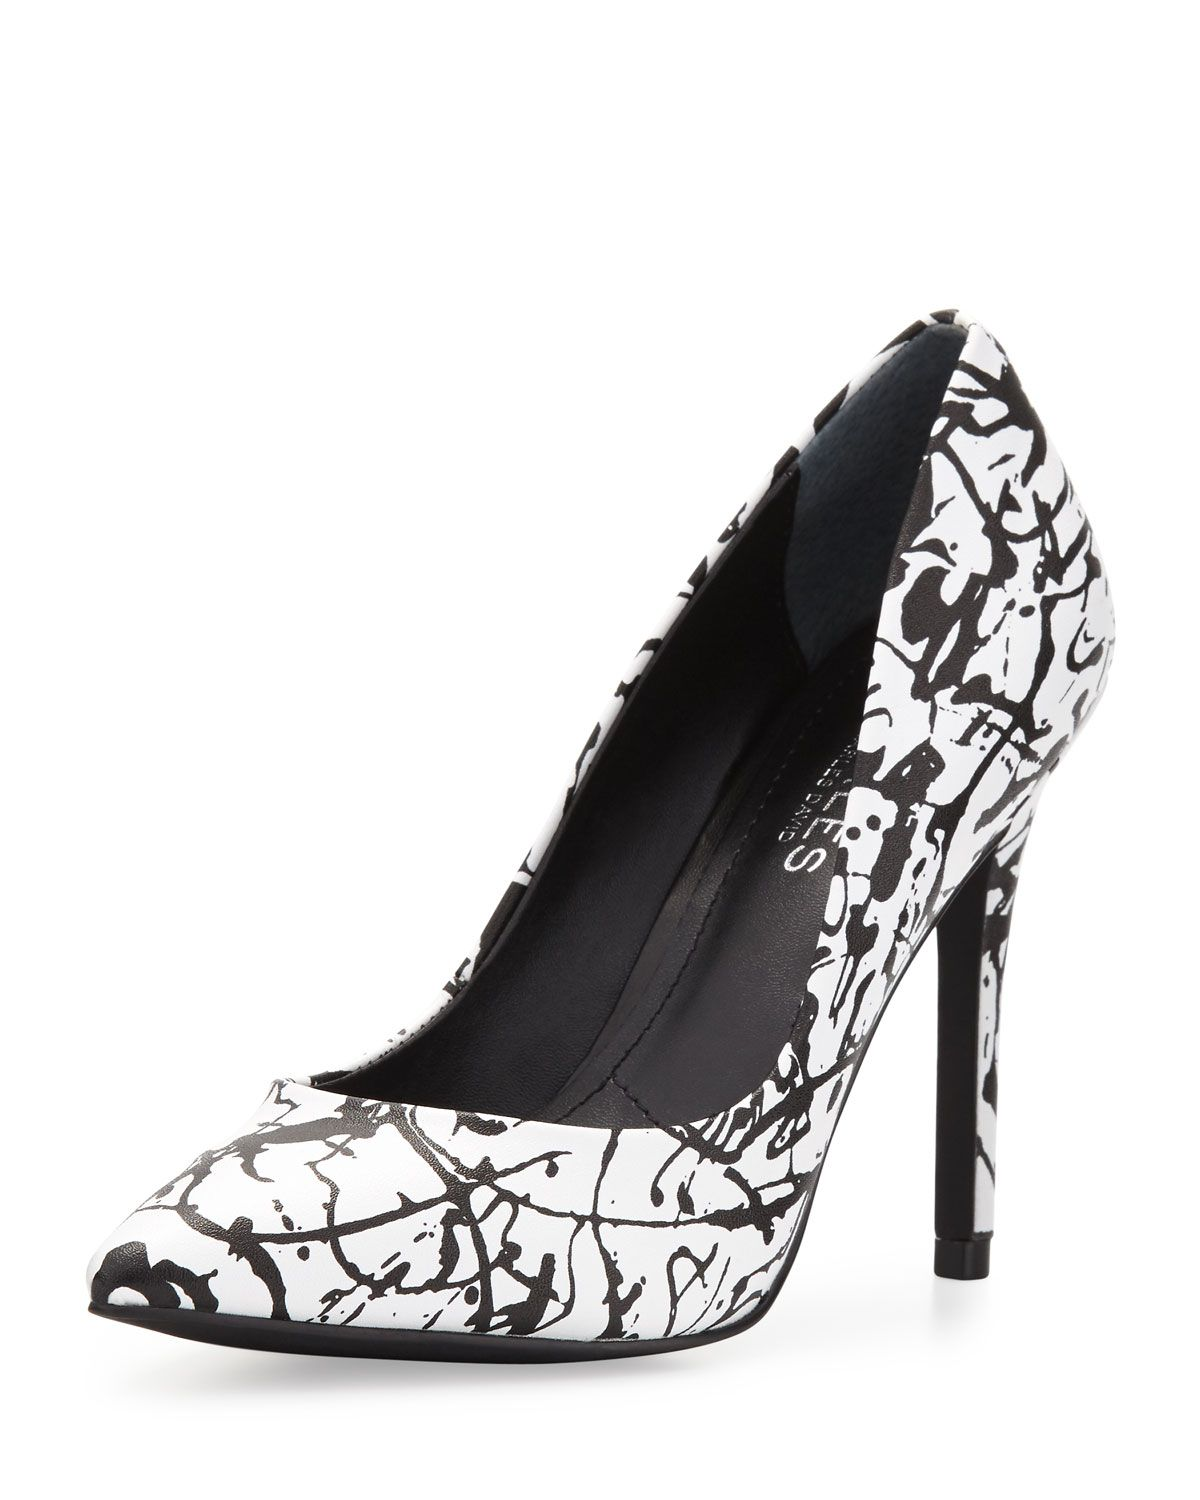 Charles by Charles David Pact Splatter-Print Leather Pump, Black & White, Women's, Size: 6 1/2, Black/Whit